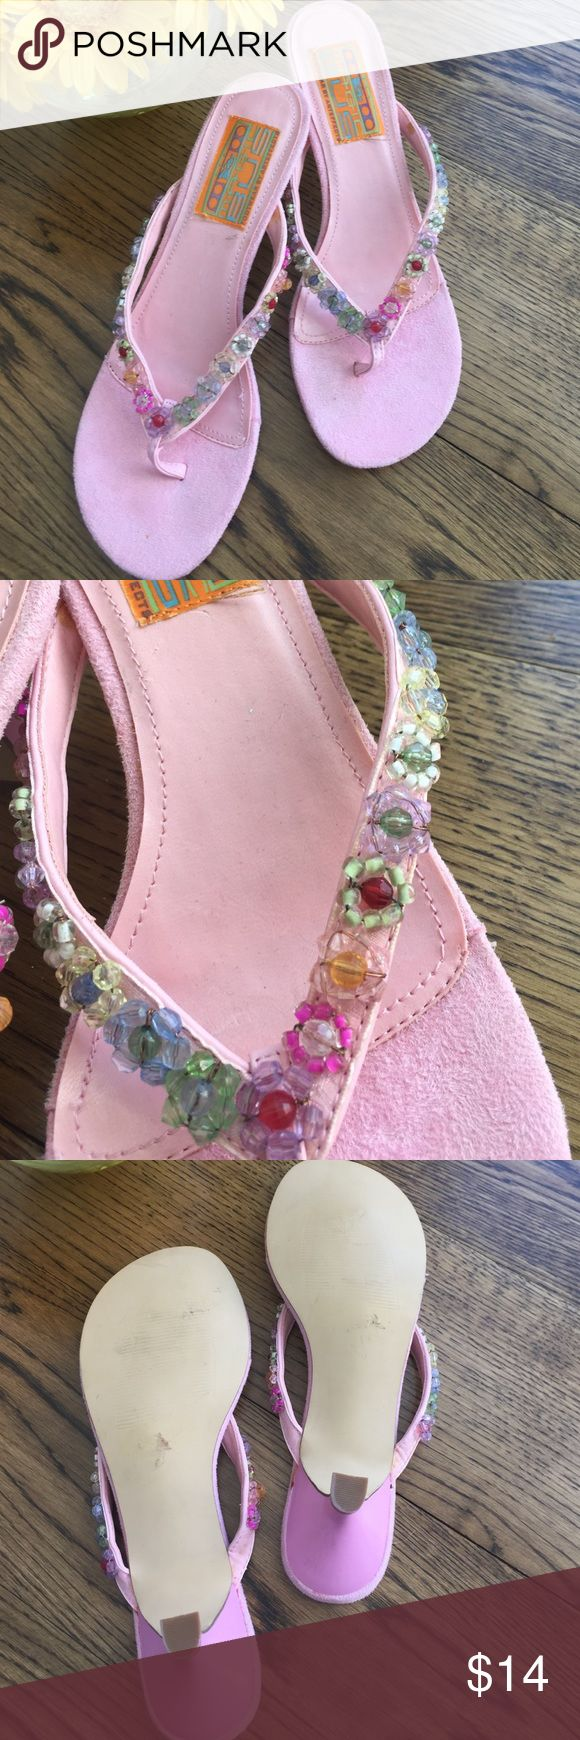 Pretty pink beaded kitten heel sandal by Magic Bus Cute pink sandal w/intricate beading along straps.  Preppy and prettty!  Suede pad for your toes. Magic Bus Shoes Sandals